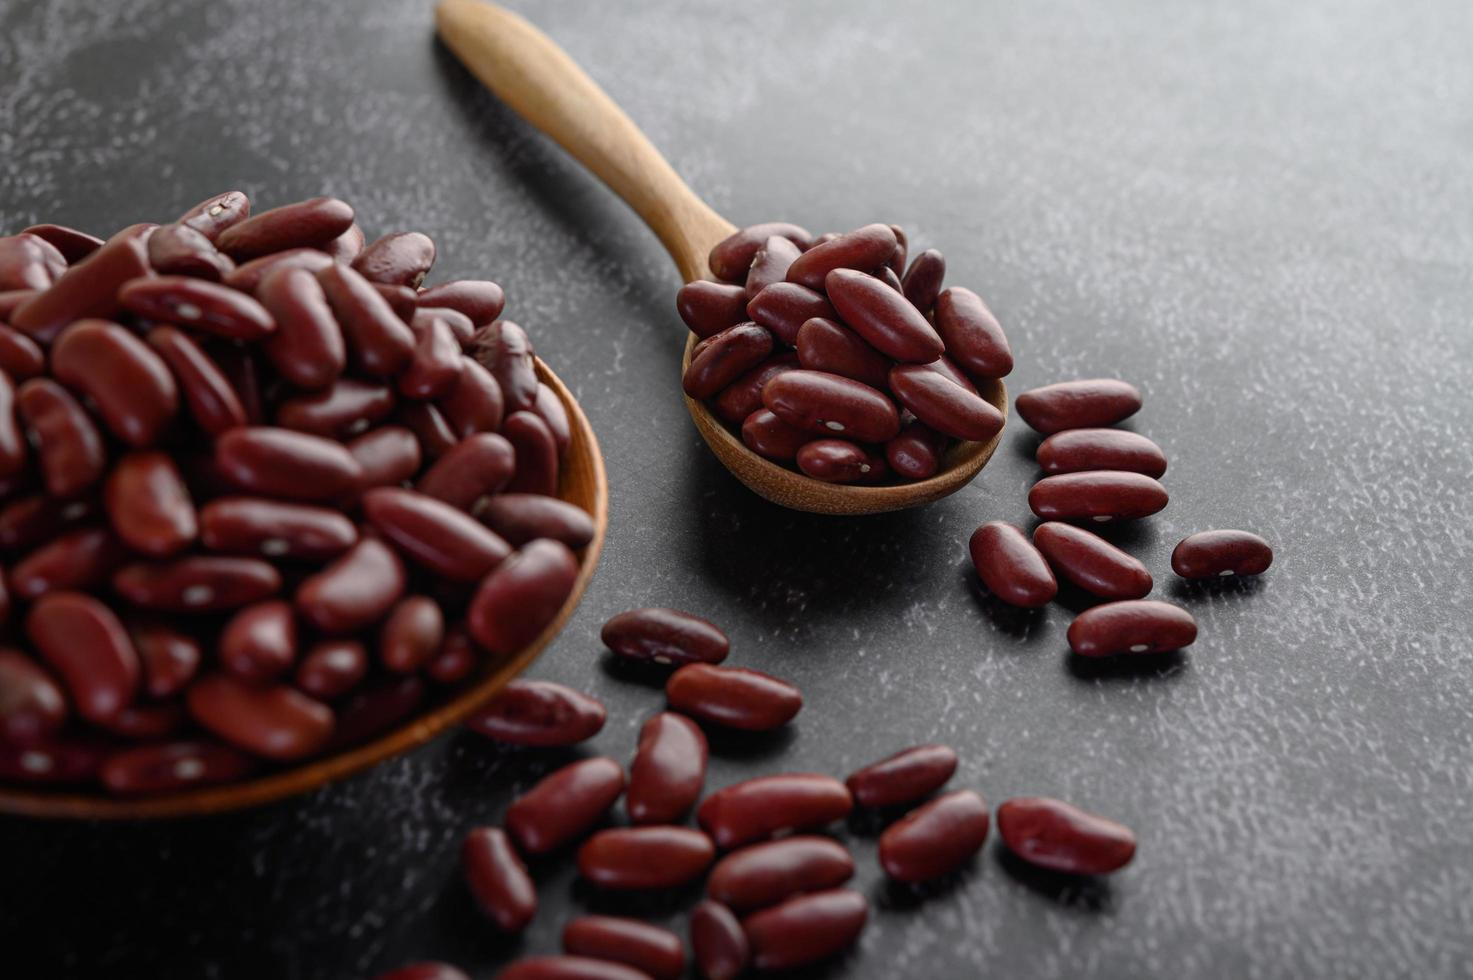 Red beans in wooden bowls on black kitchen surface photo